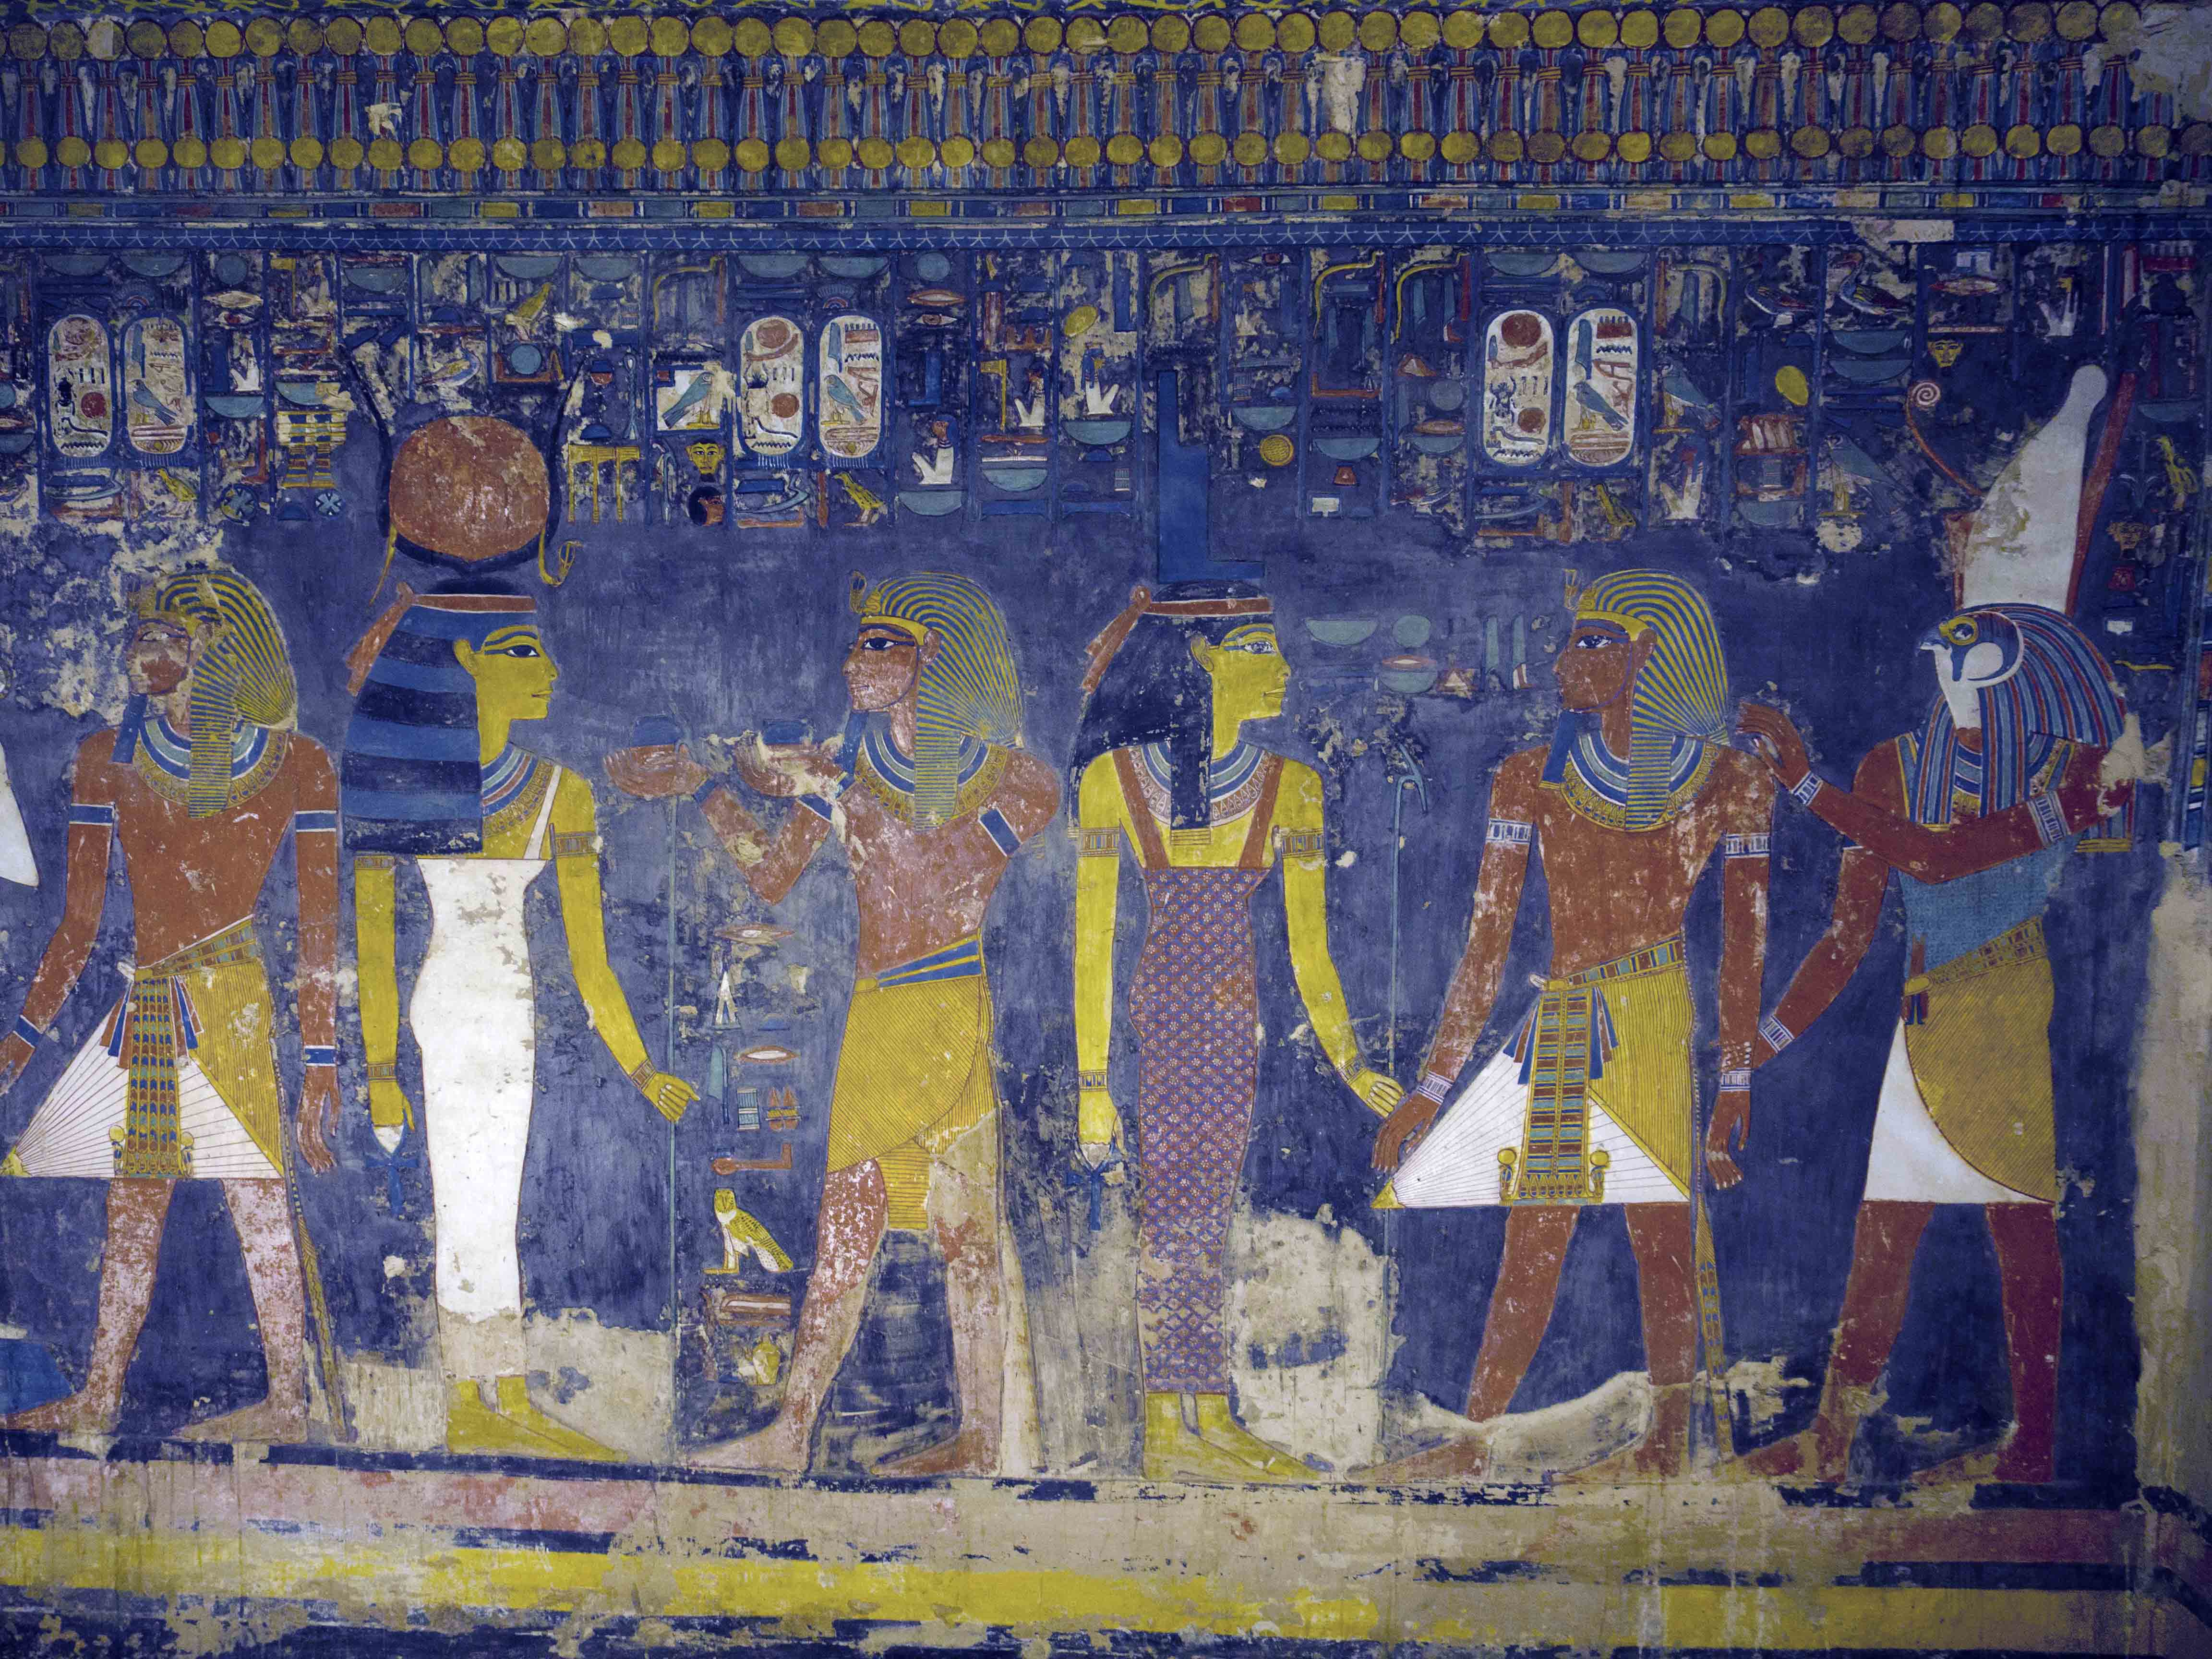 Pharonic-era mural inside the tomb of an ancient king, reopened after five years of restoration, Luxor, Egypt, Nov. 5, 2015. (H. Elrasam/VOA)